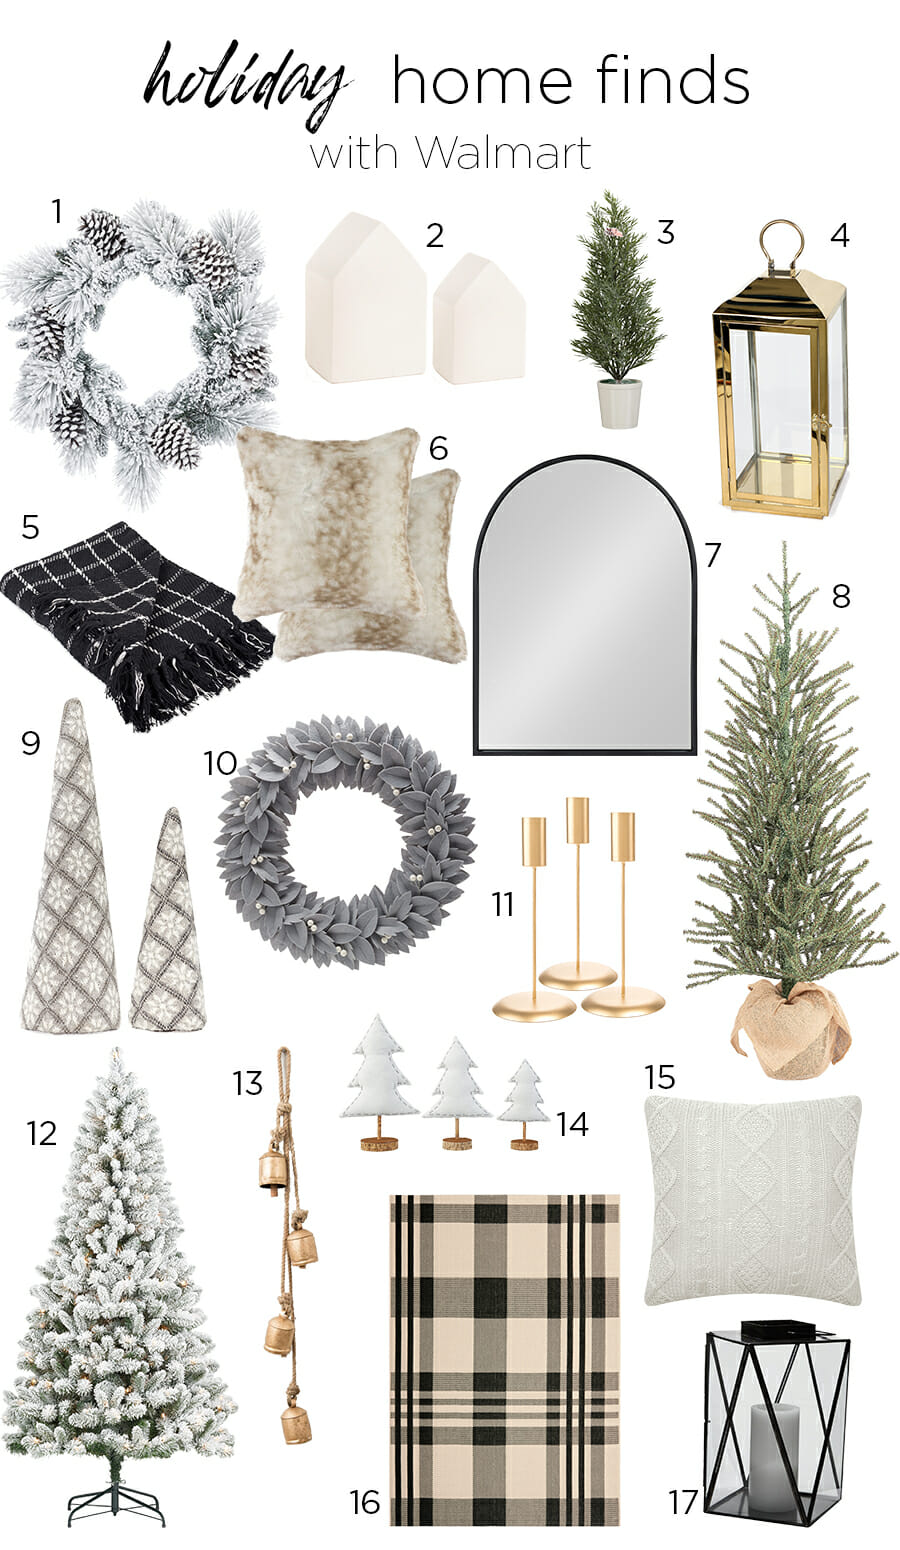 Affordable Holiday Home Finds